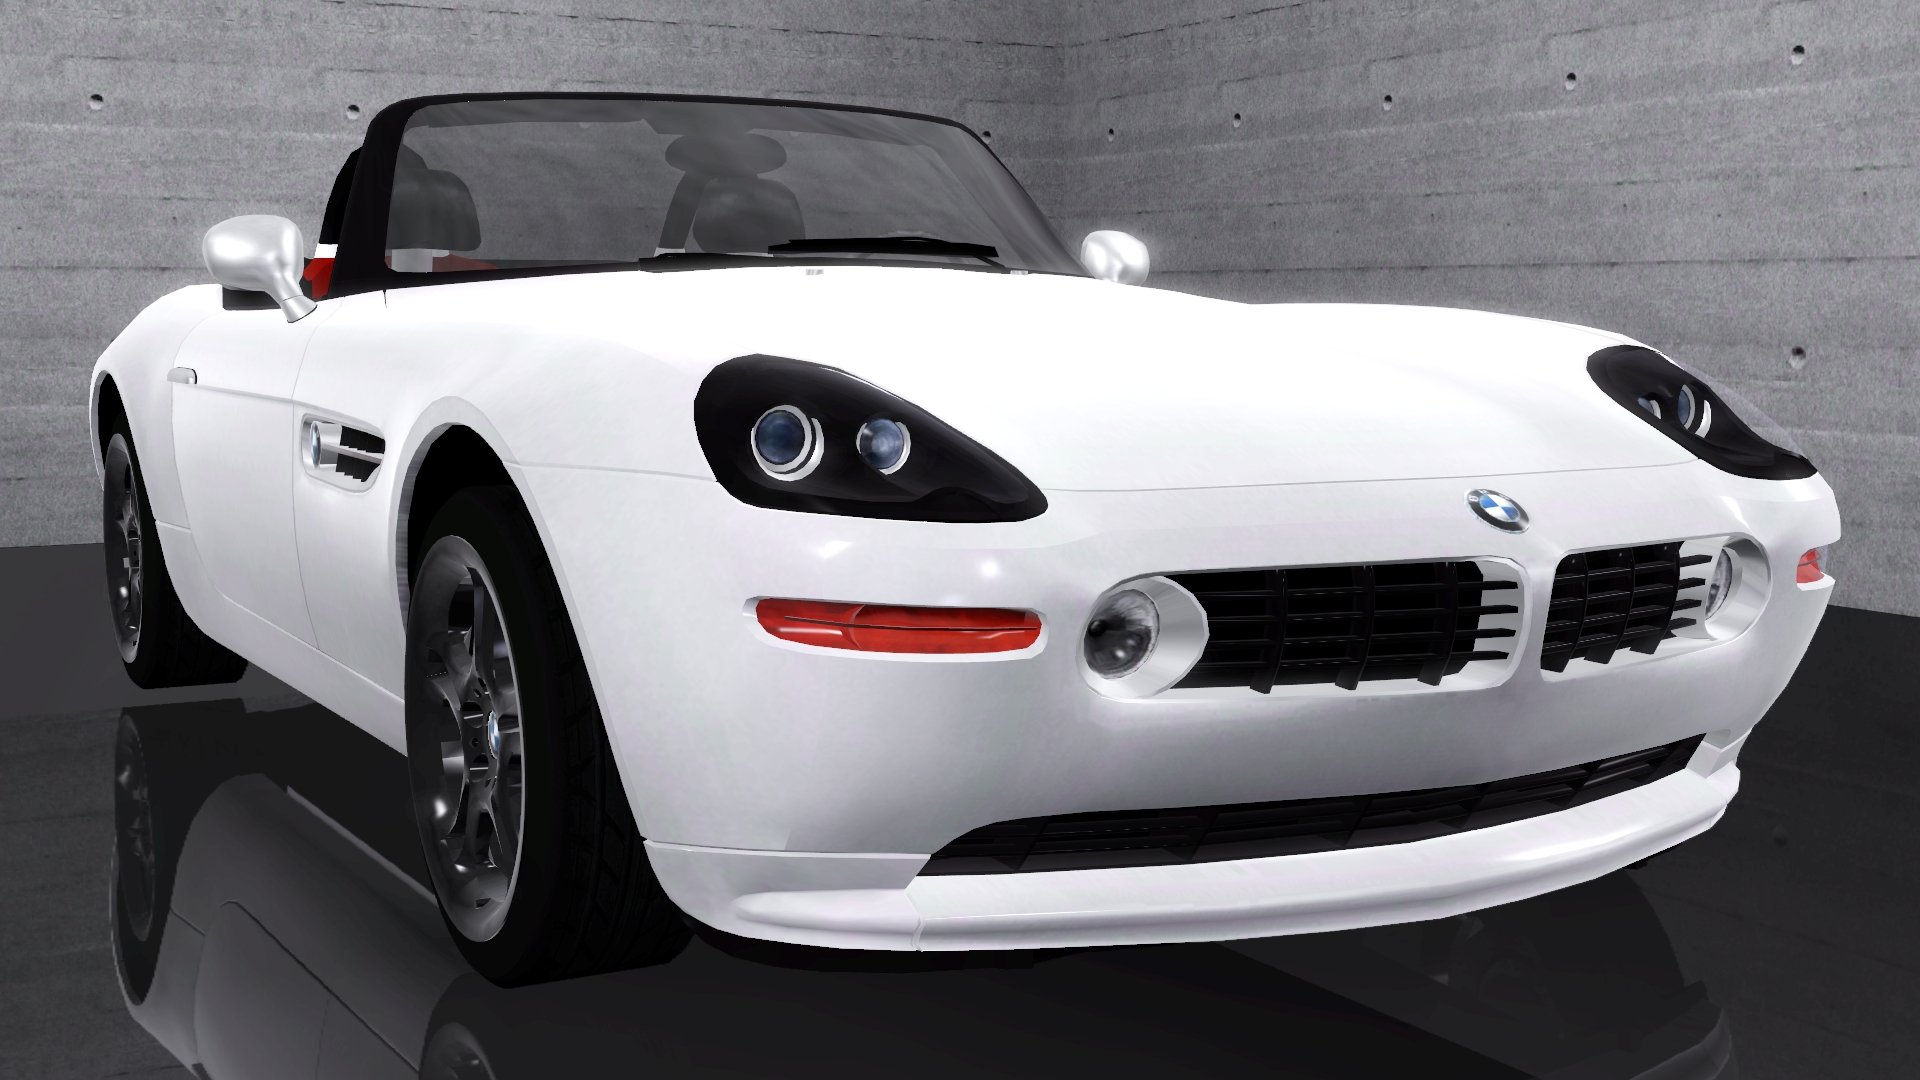 2000 BMW Z8 by Fresh-Prince